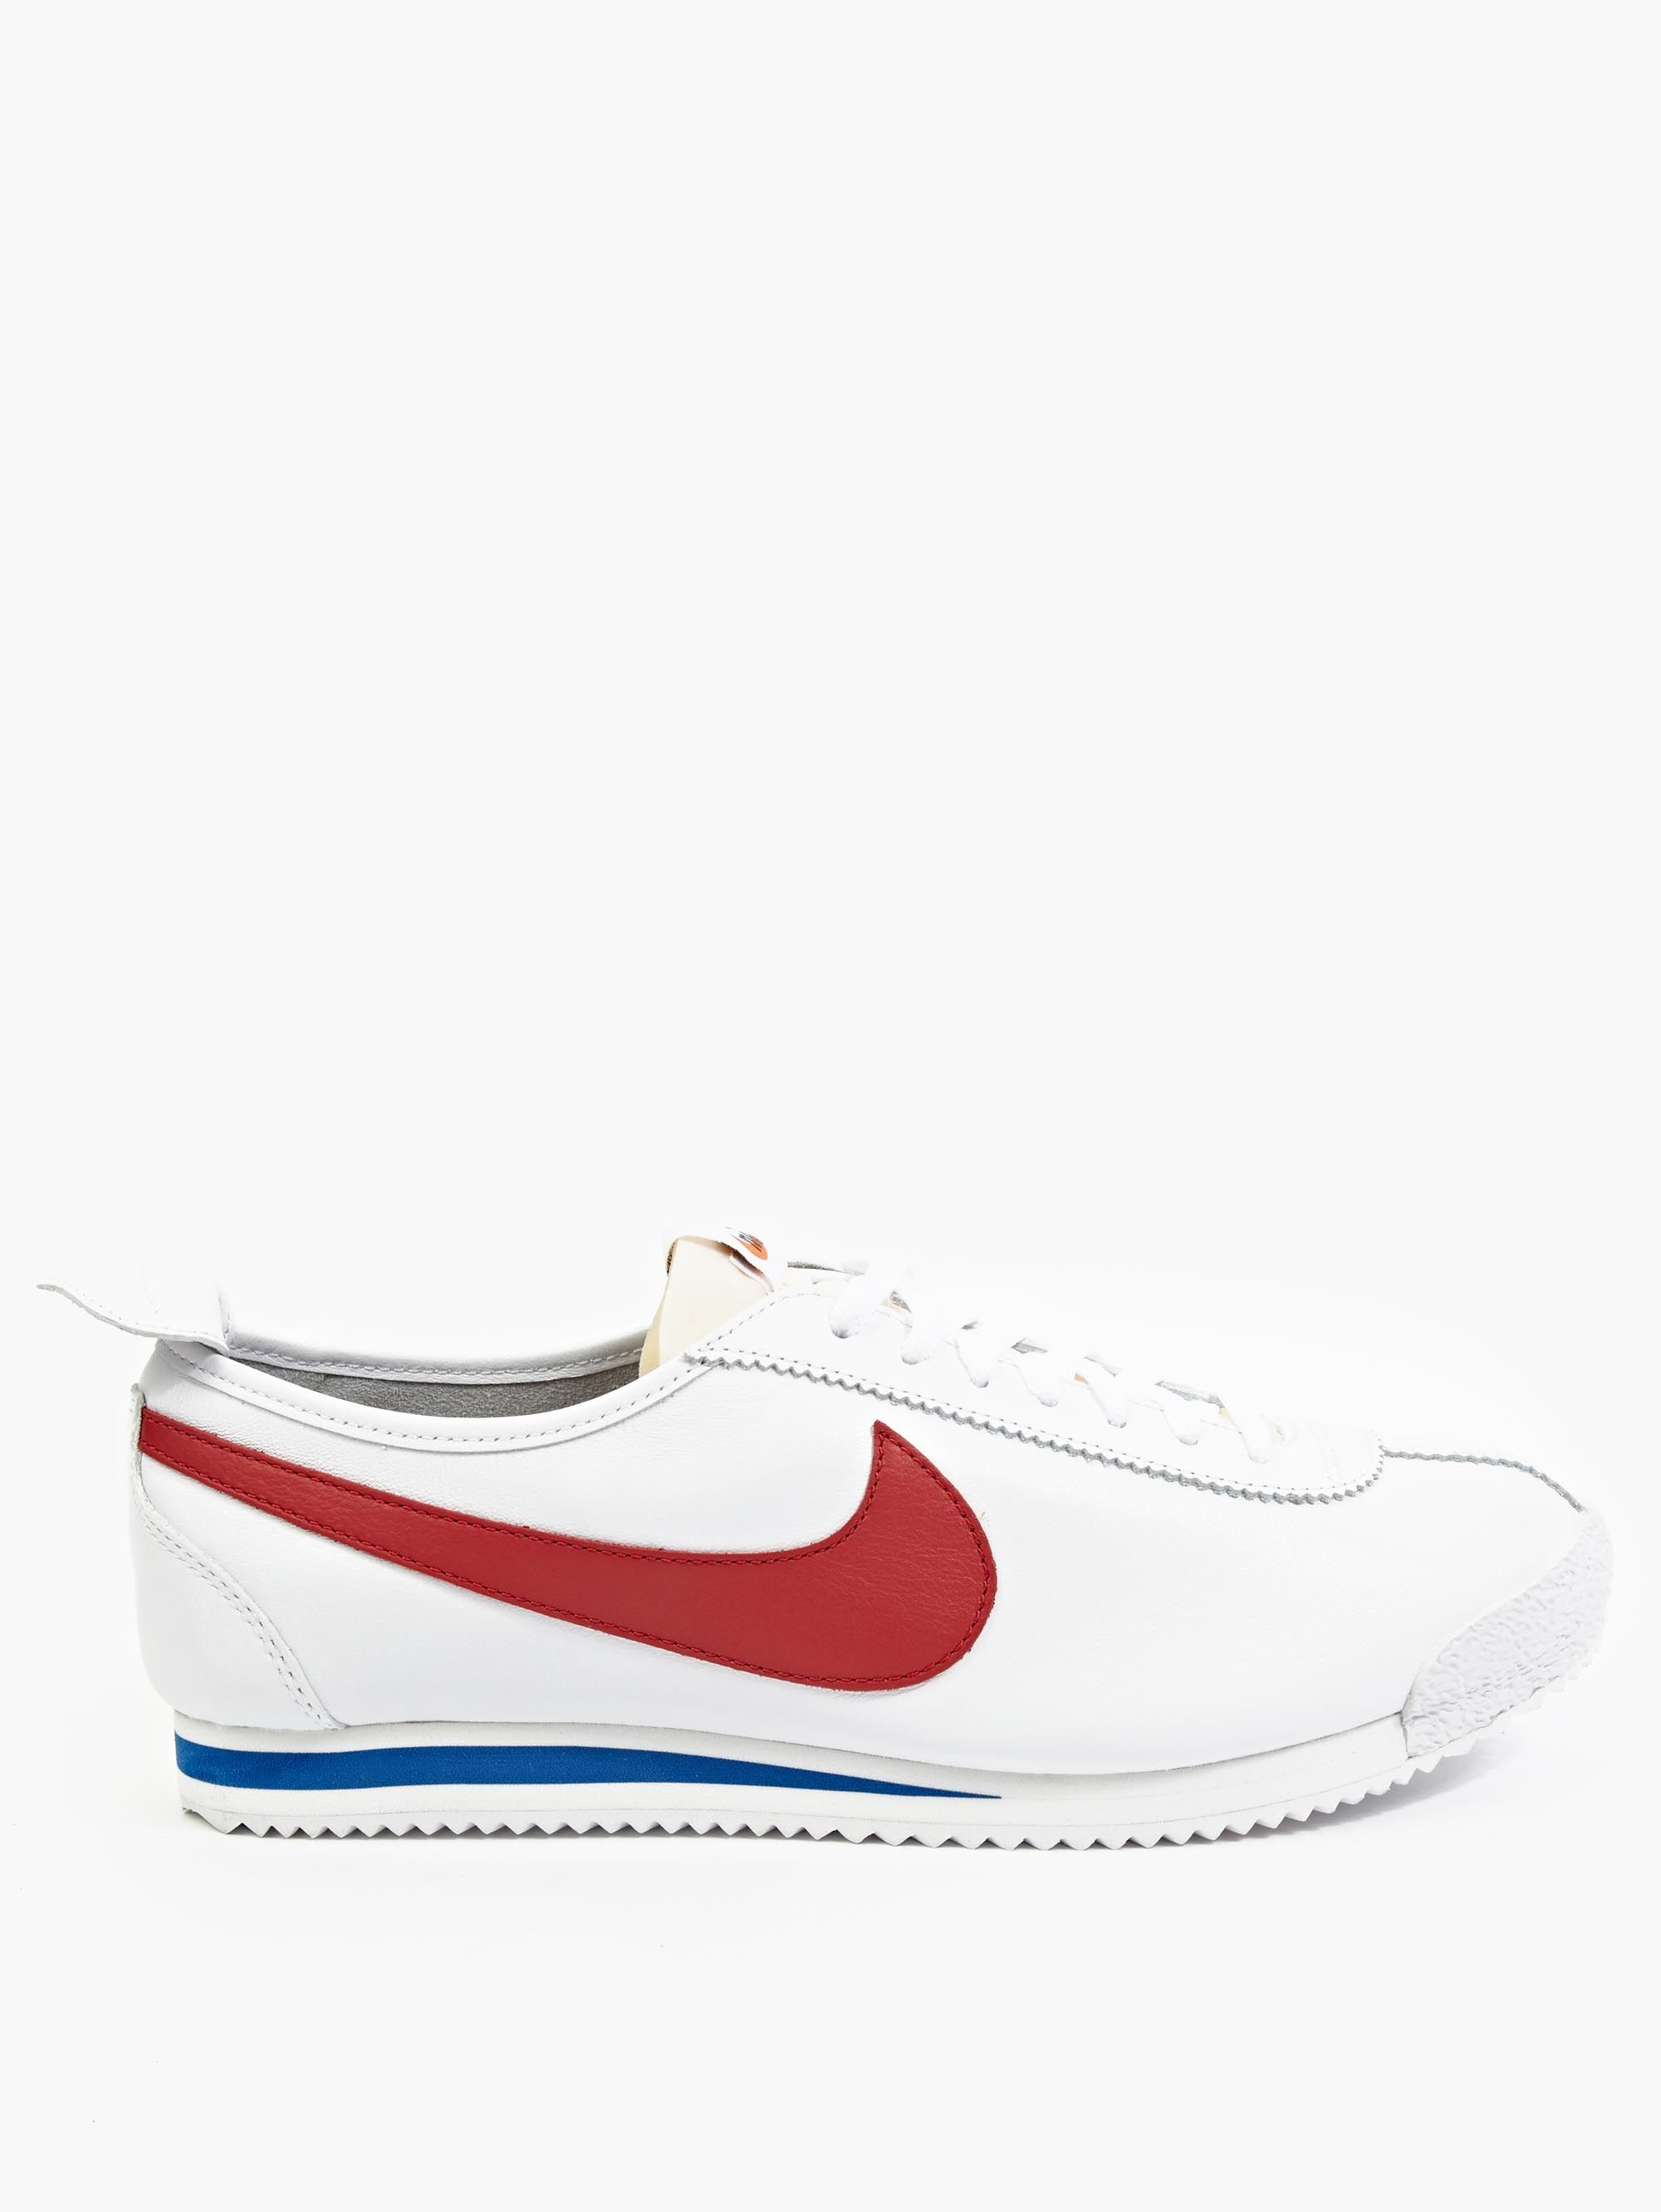 nike white leather cortez 39 72 sp sneakers in white for men. Black Bedroom Furniture Sets. Home Design Ideas